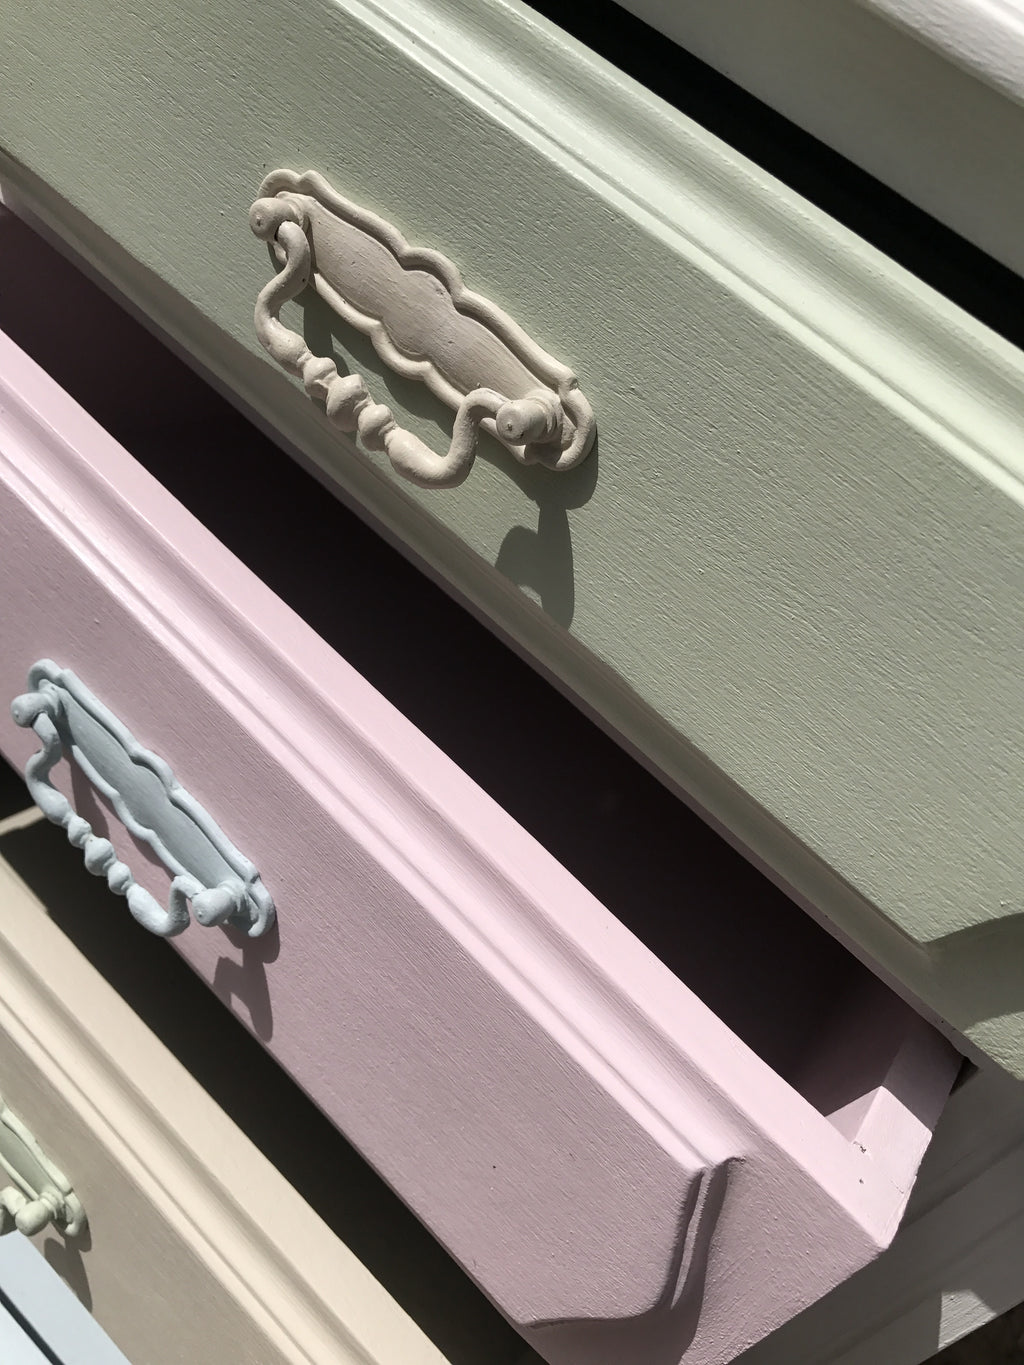 Cabinet with 4 Drawers in Pastel Shades